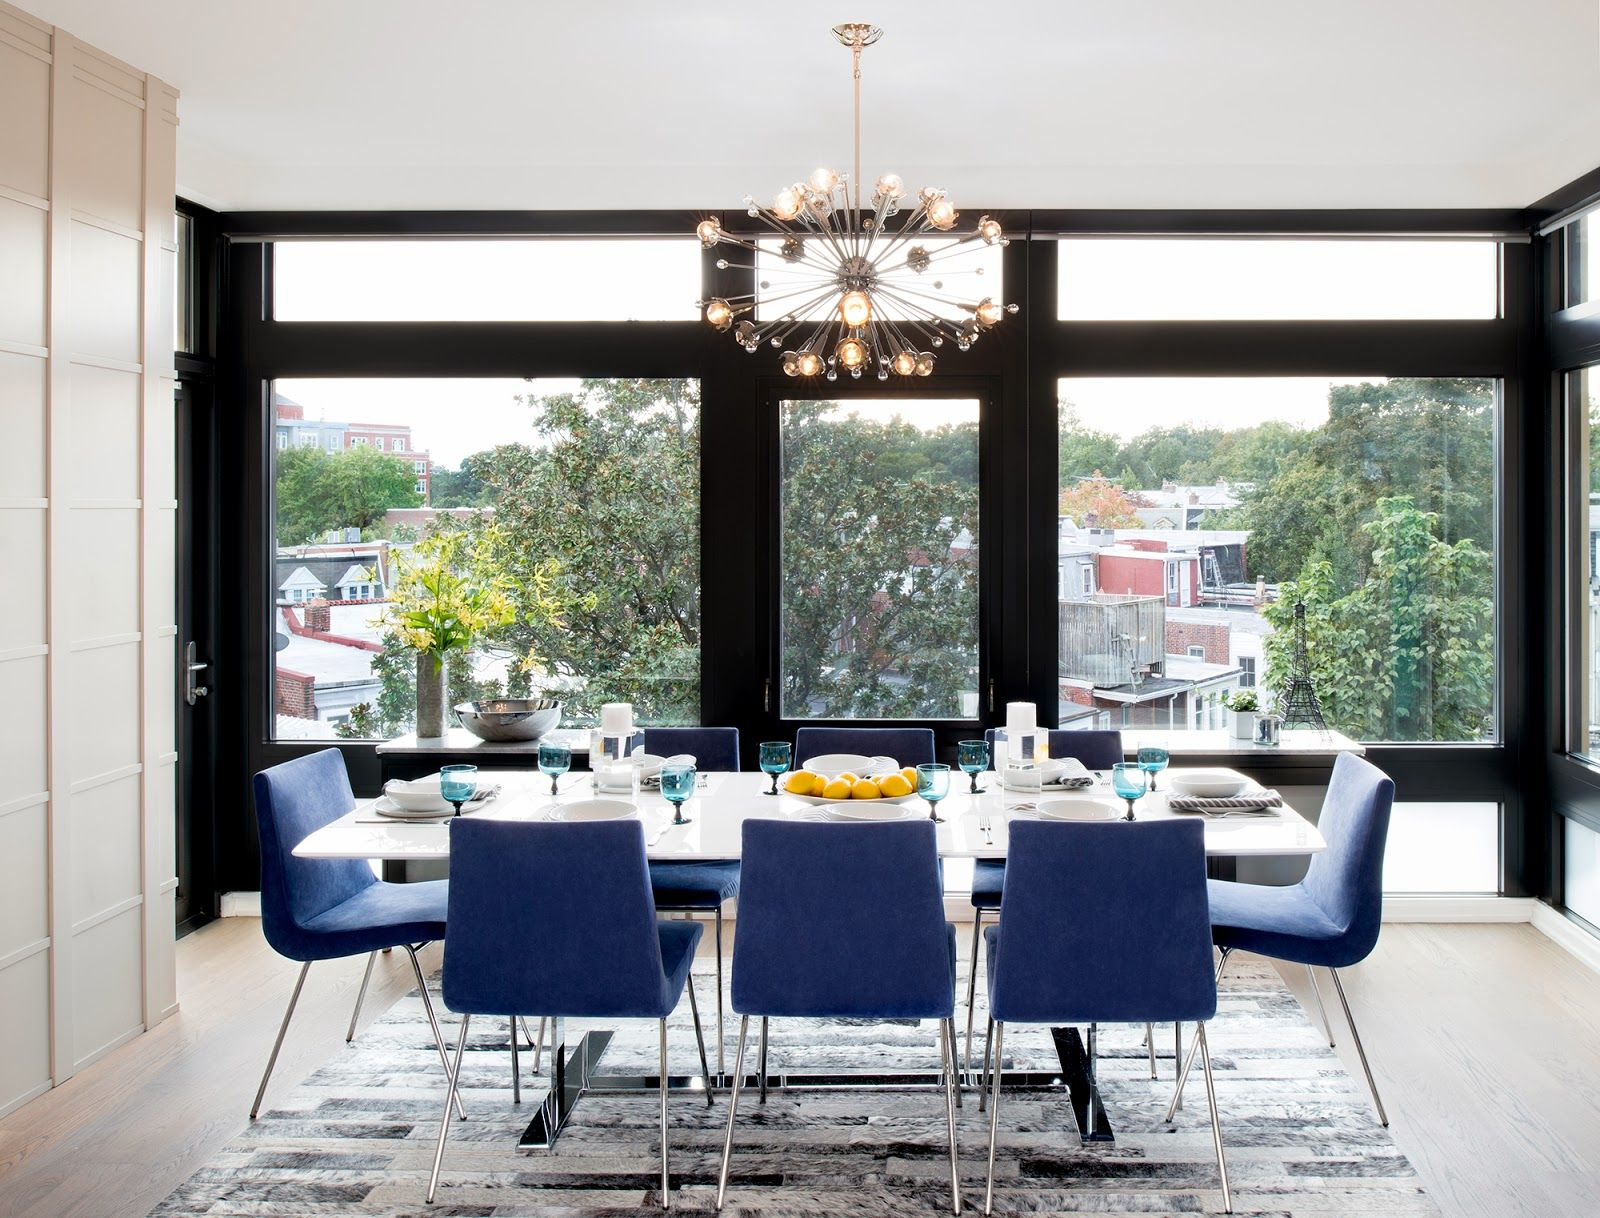 Timely Timelessb How To Follow Design Trends While Keeping Your Unique Trends In Dining Rooms 2018